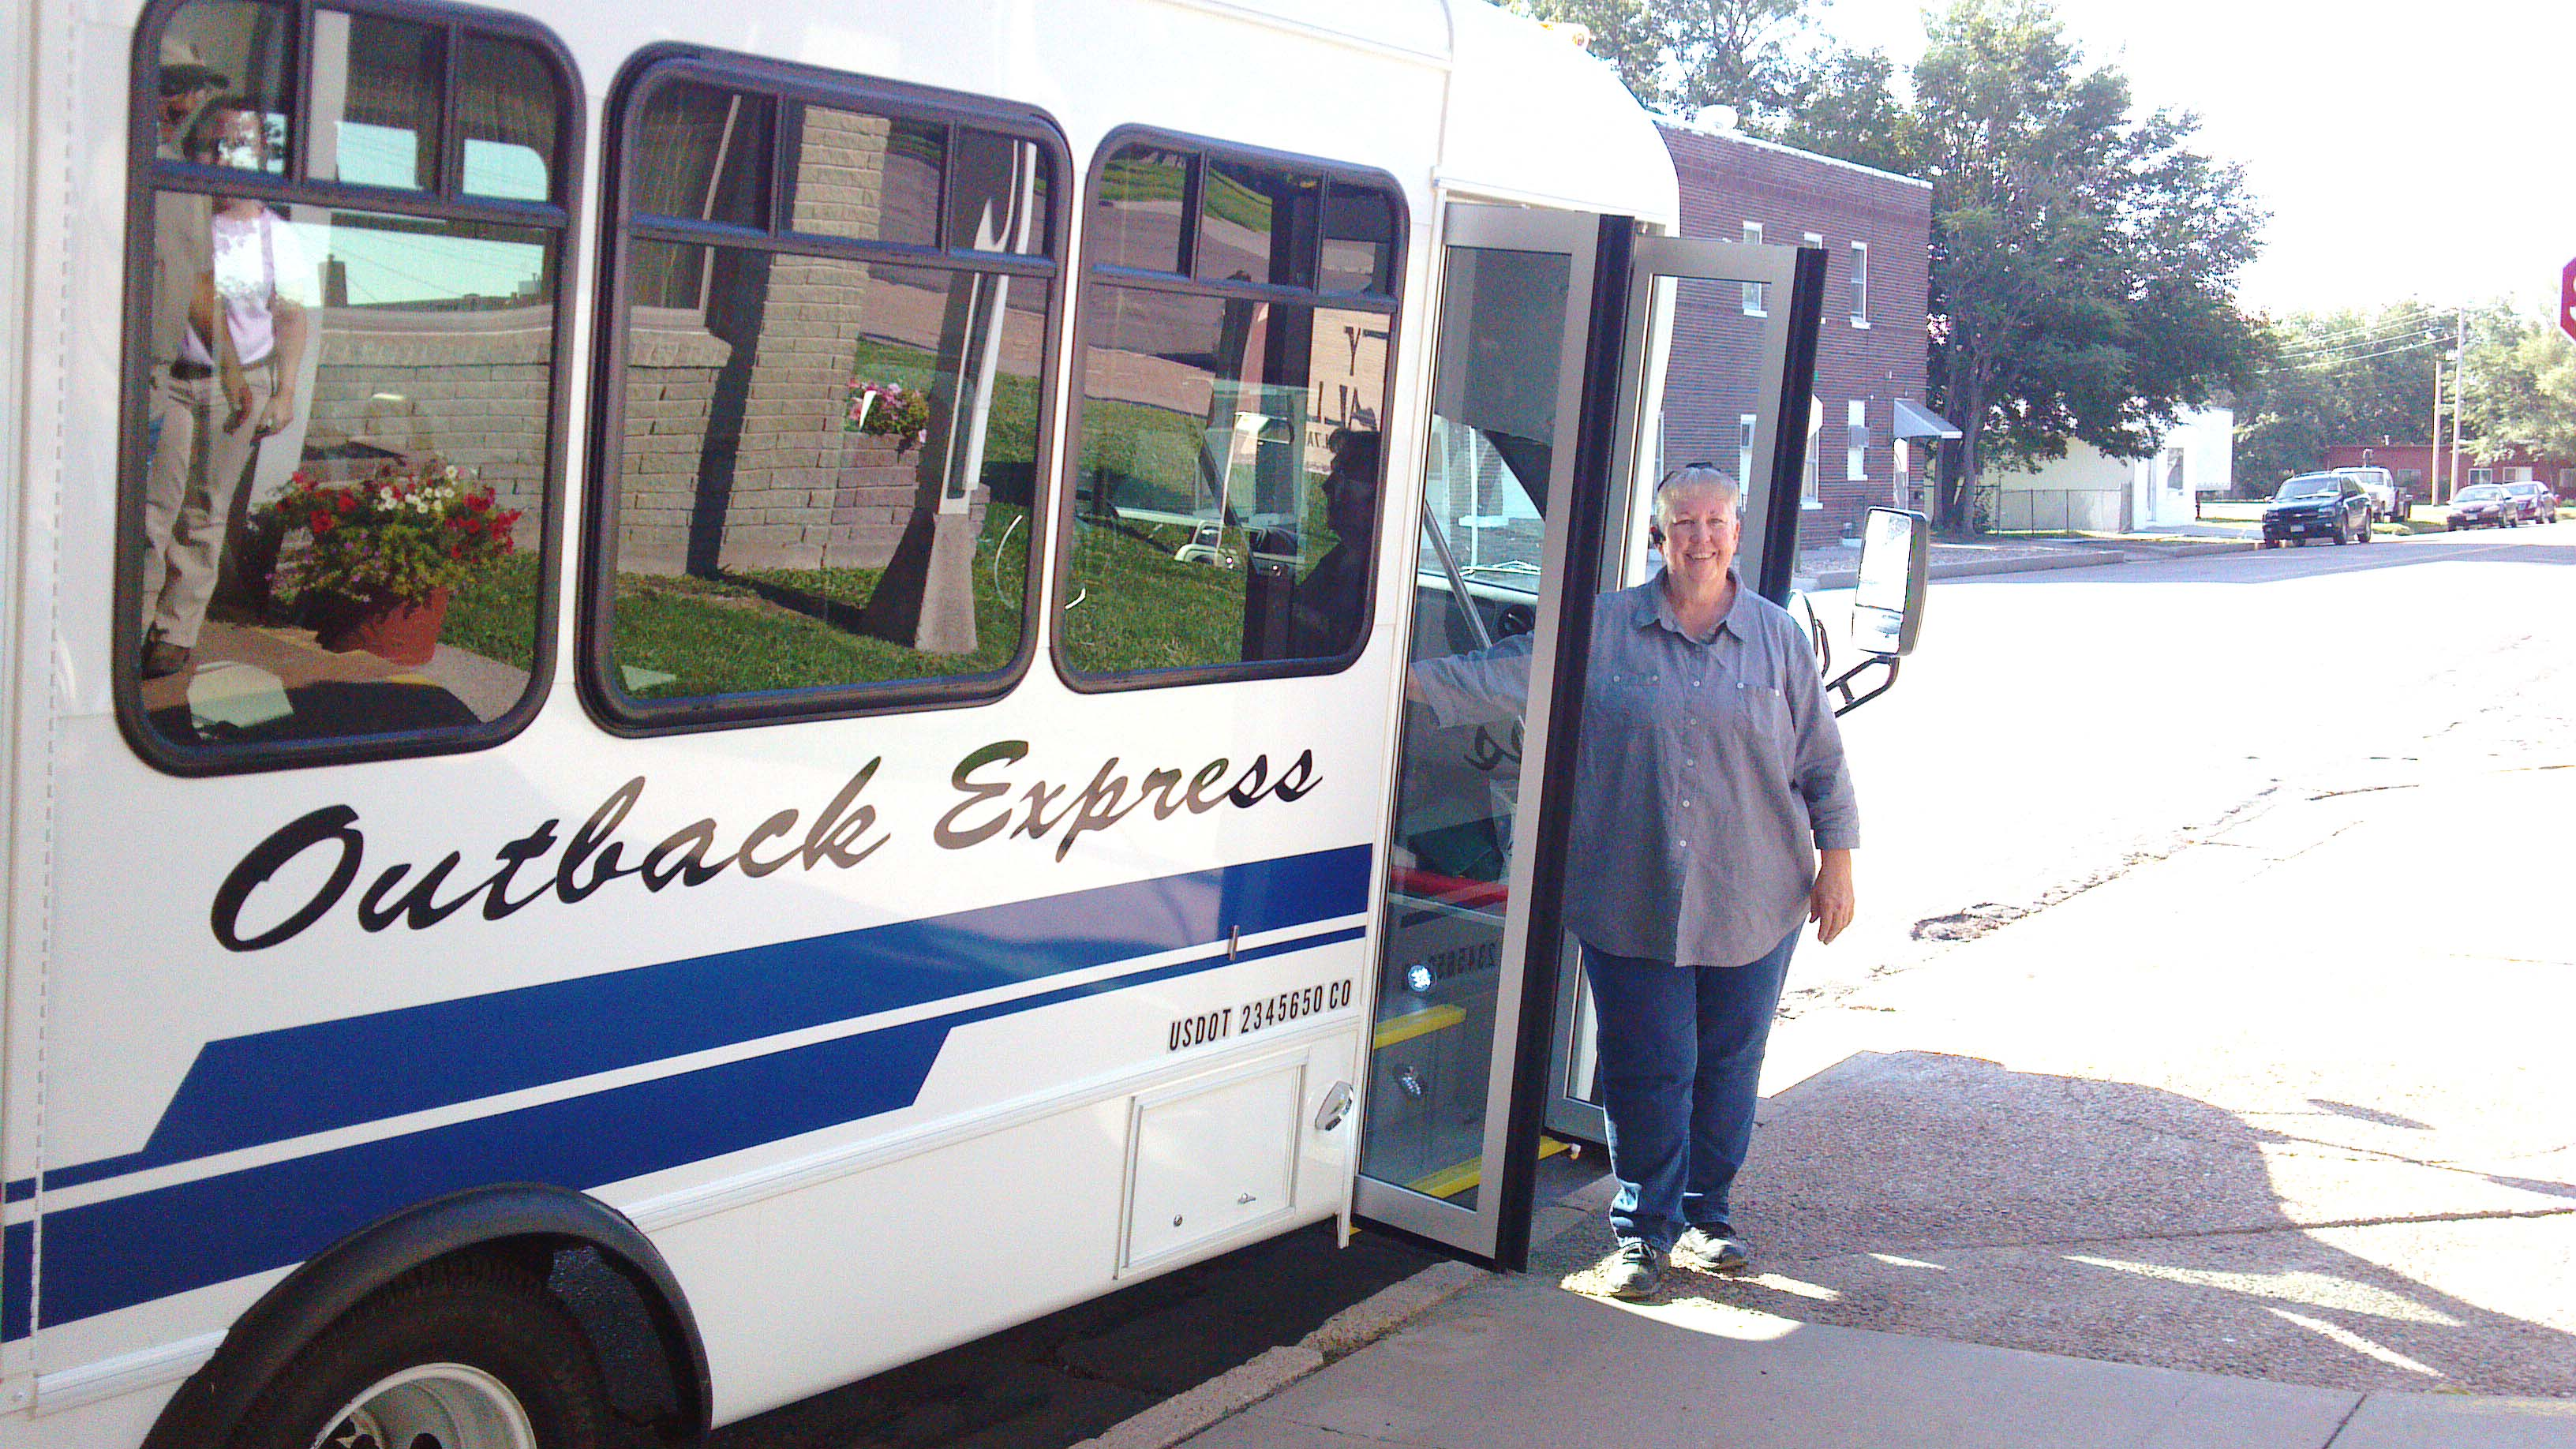 Outback Express Bus